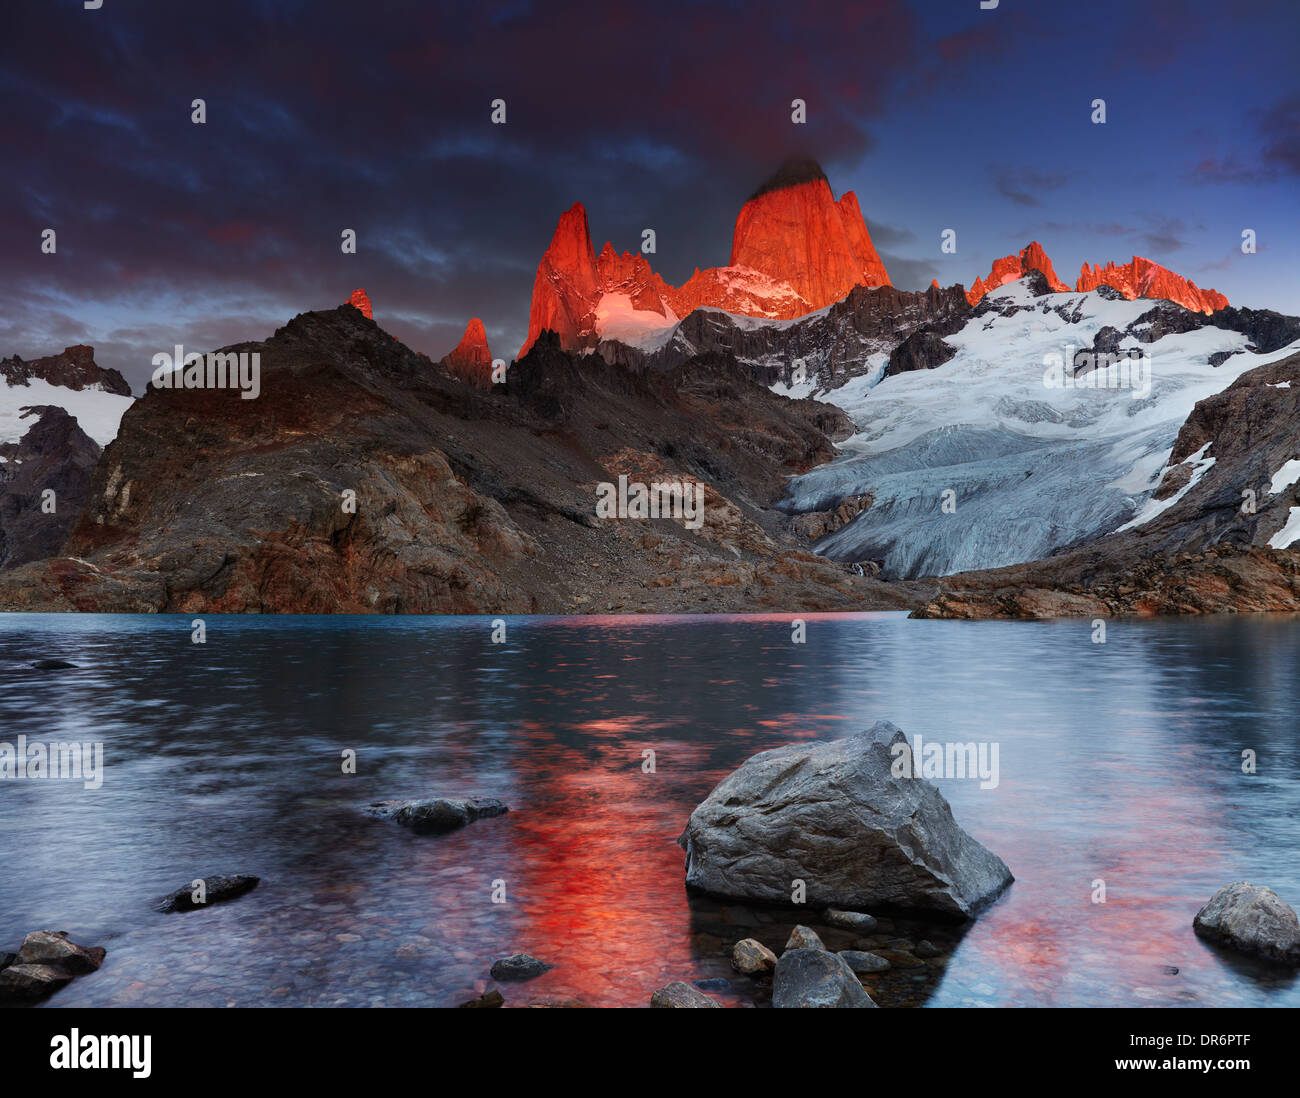 Laguna de Los Tres and mount Fitz Roy, Dramatical sunrise, Patagonia, Argentina - Stock Image